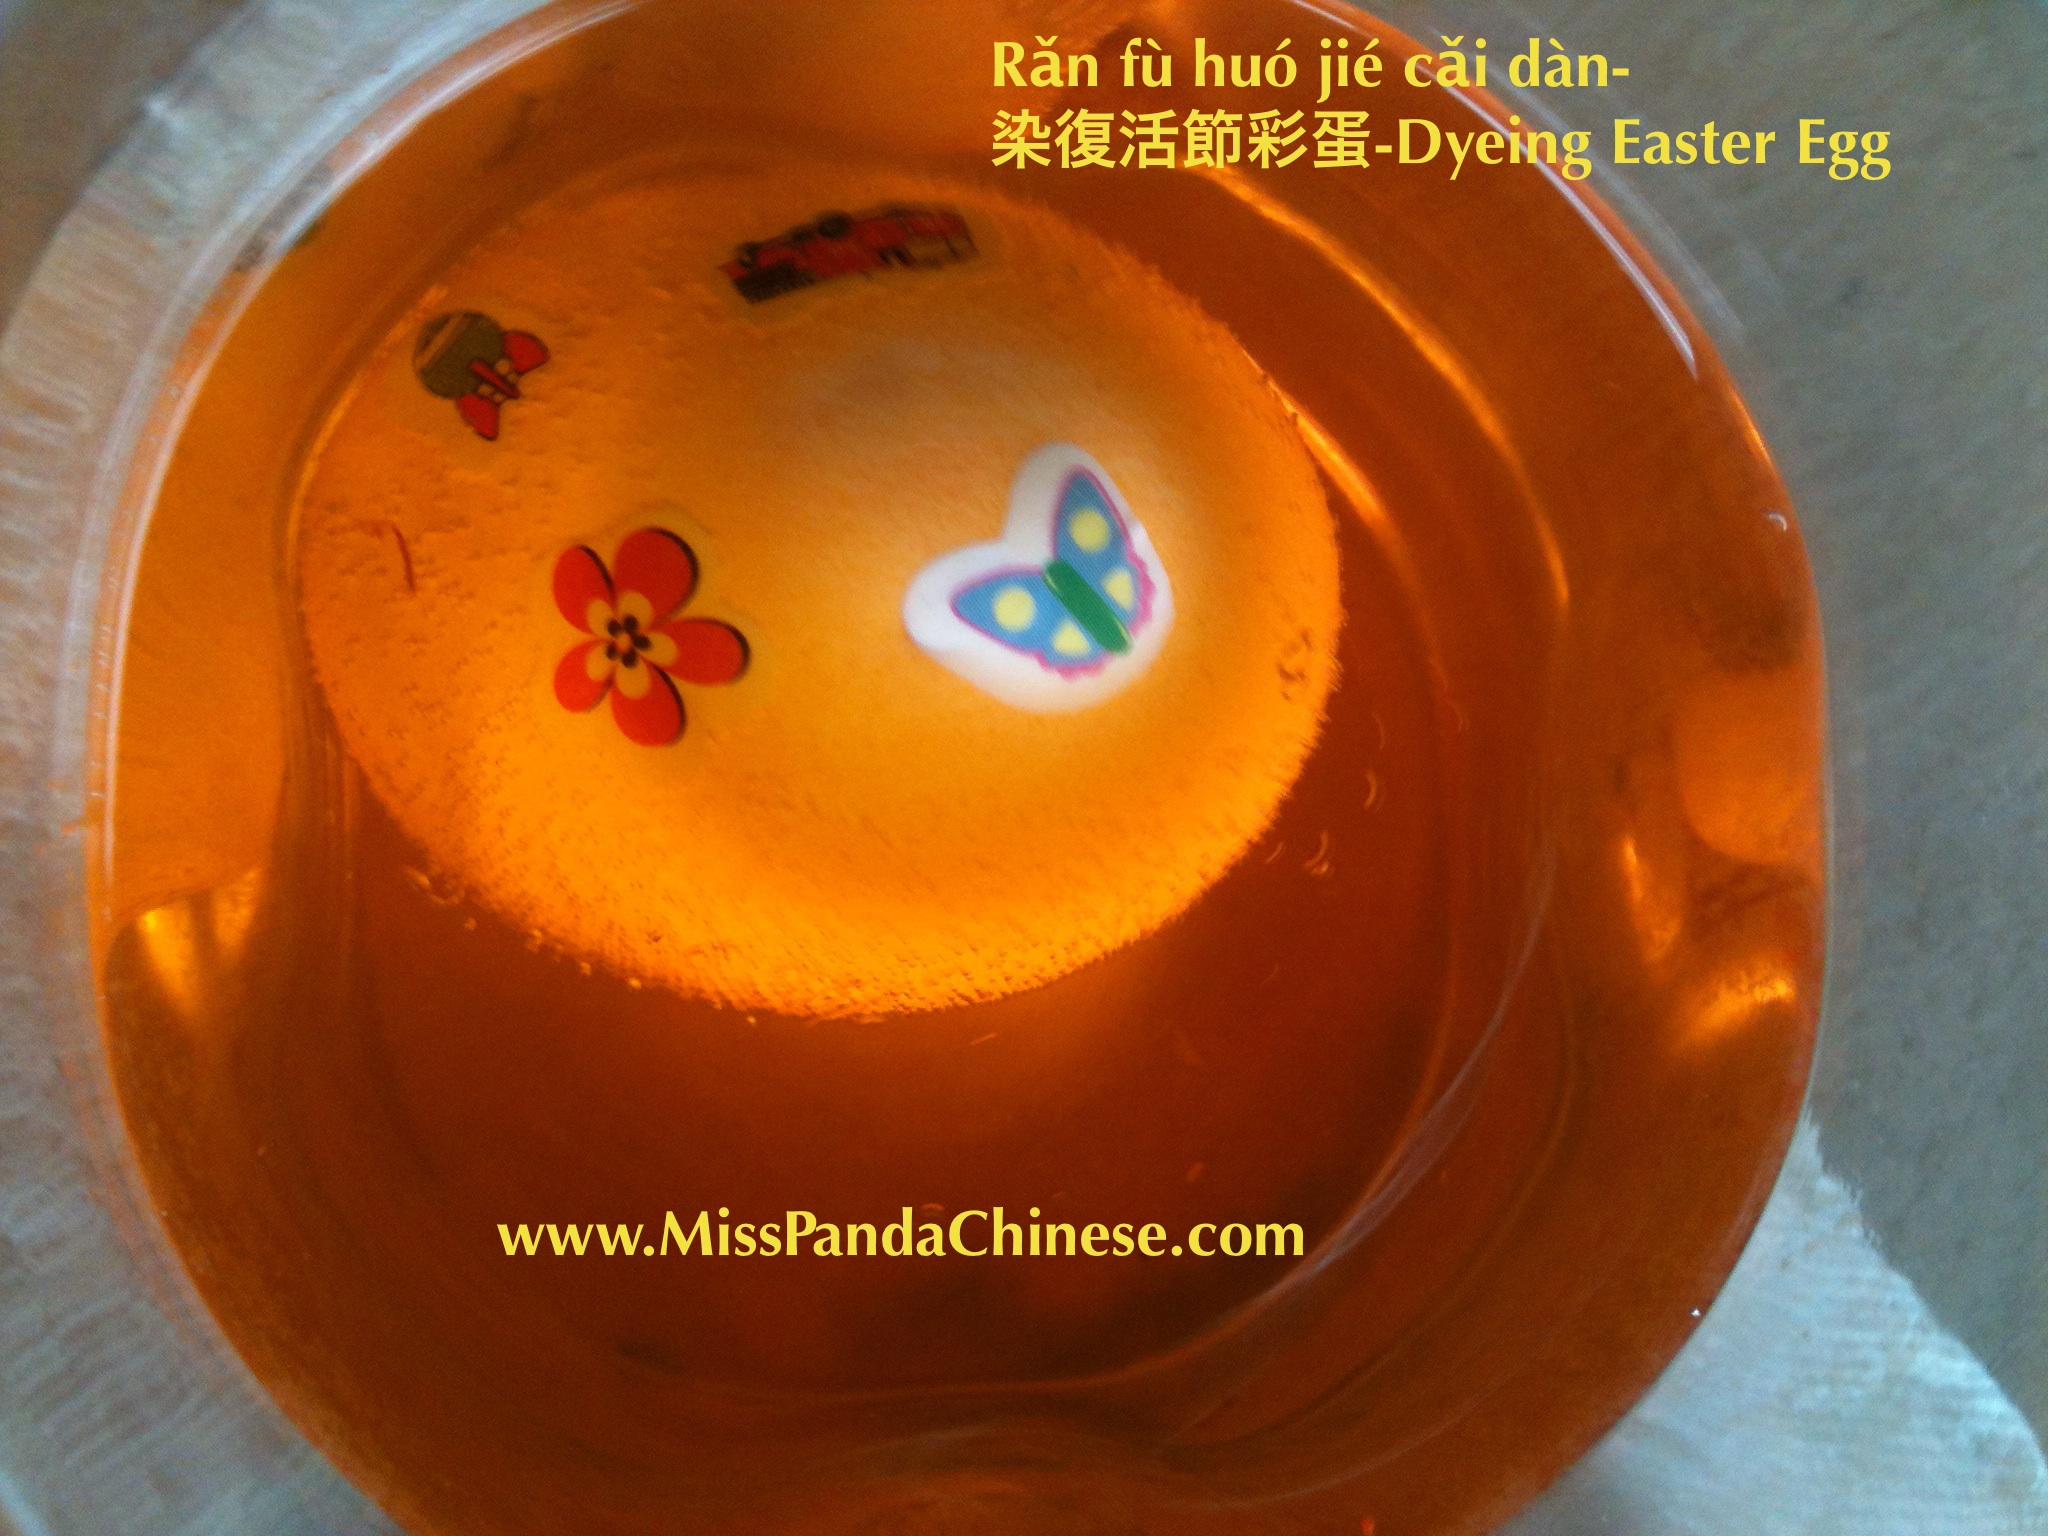 Miss Panda Chinese- Dyeing an Easter Egg